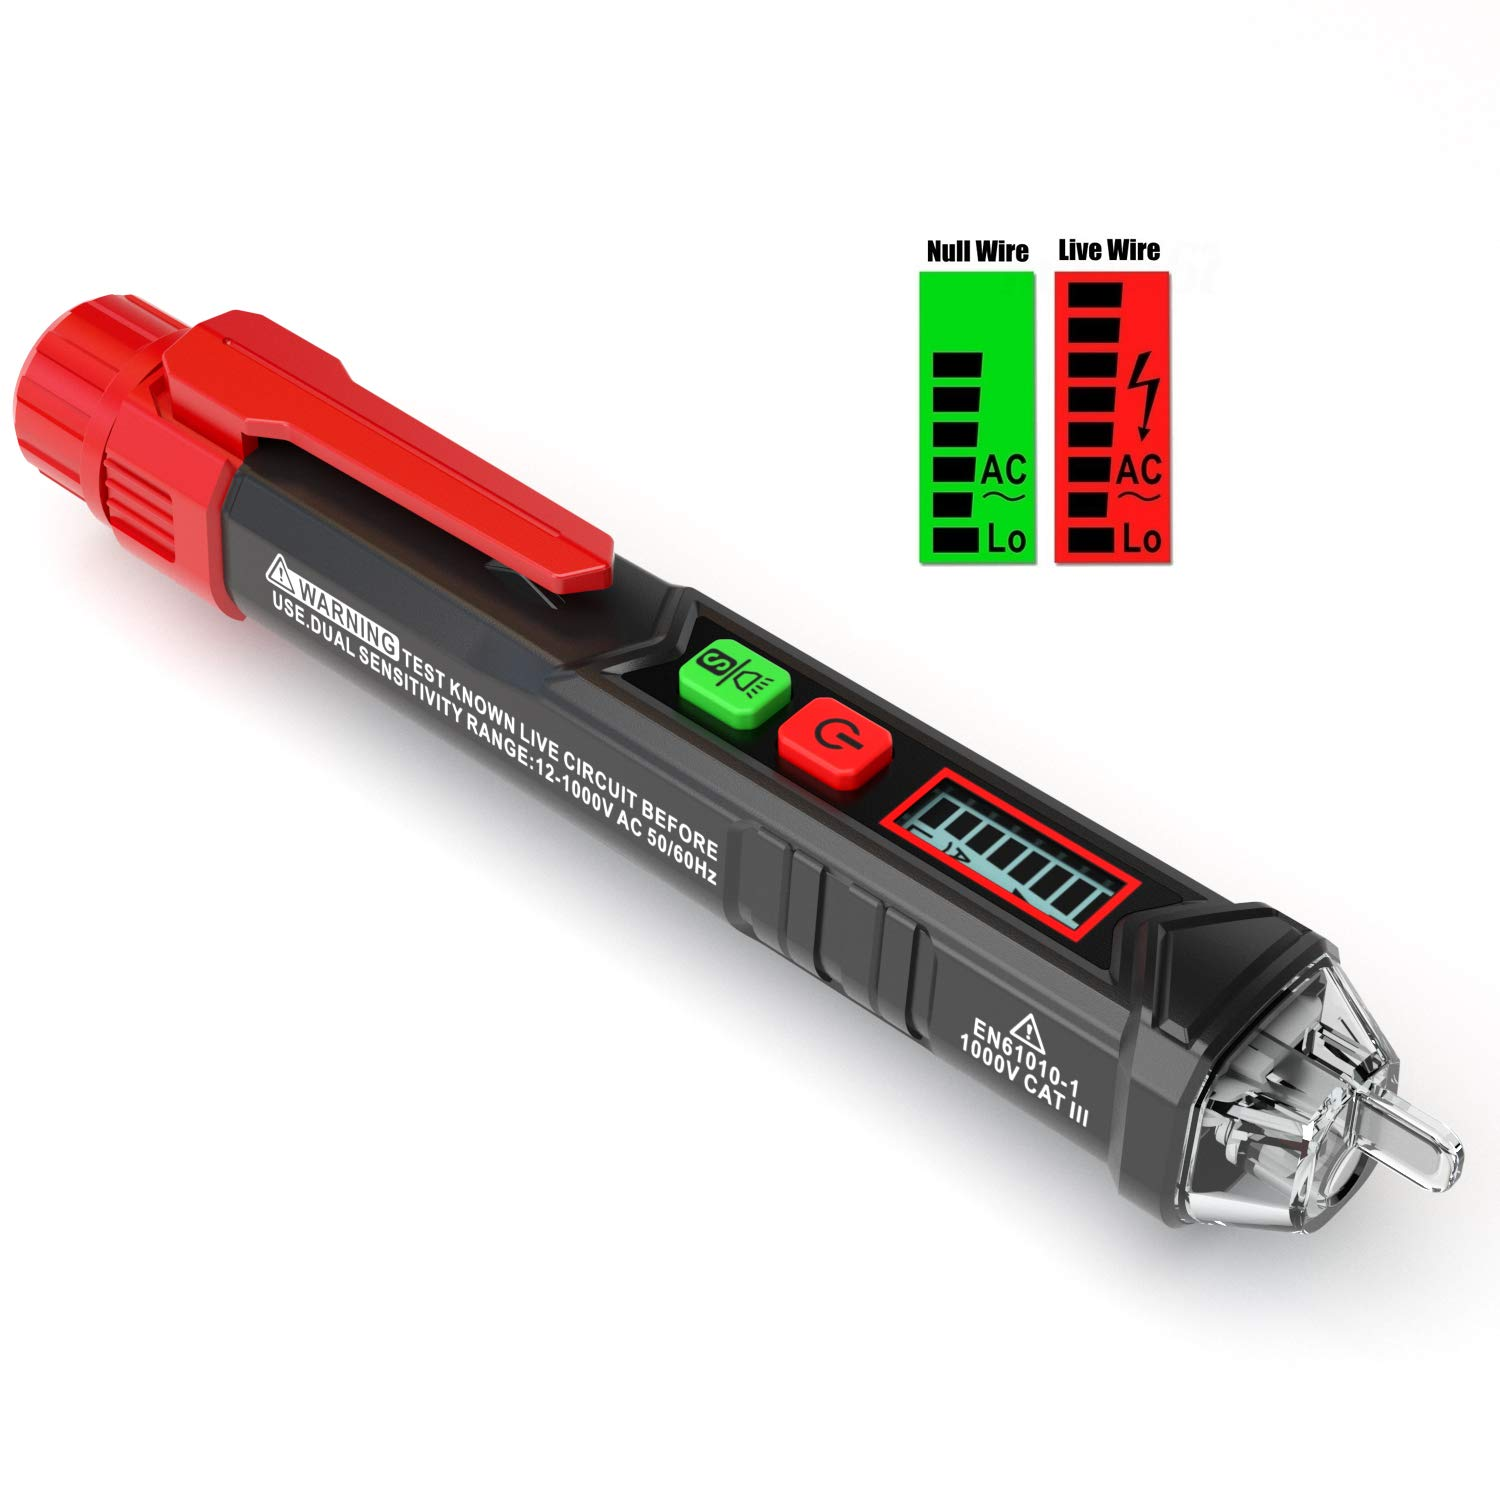 KAIWEETS Sensitive and Adjustable Non-contact Voltage Tester With LCD Display, LED Flashlight, Buzzer Alarm that Have 12V-1000V/48V-1000V Dual Range& Live/Null Wire Judgment by KAIWEETS